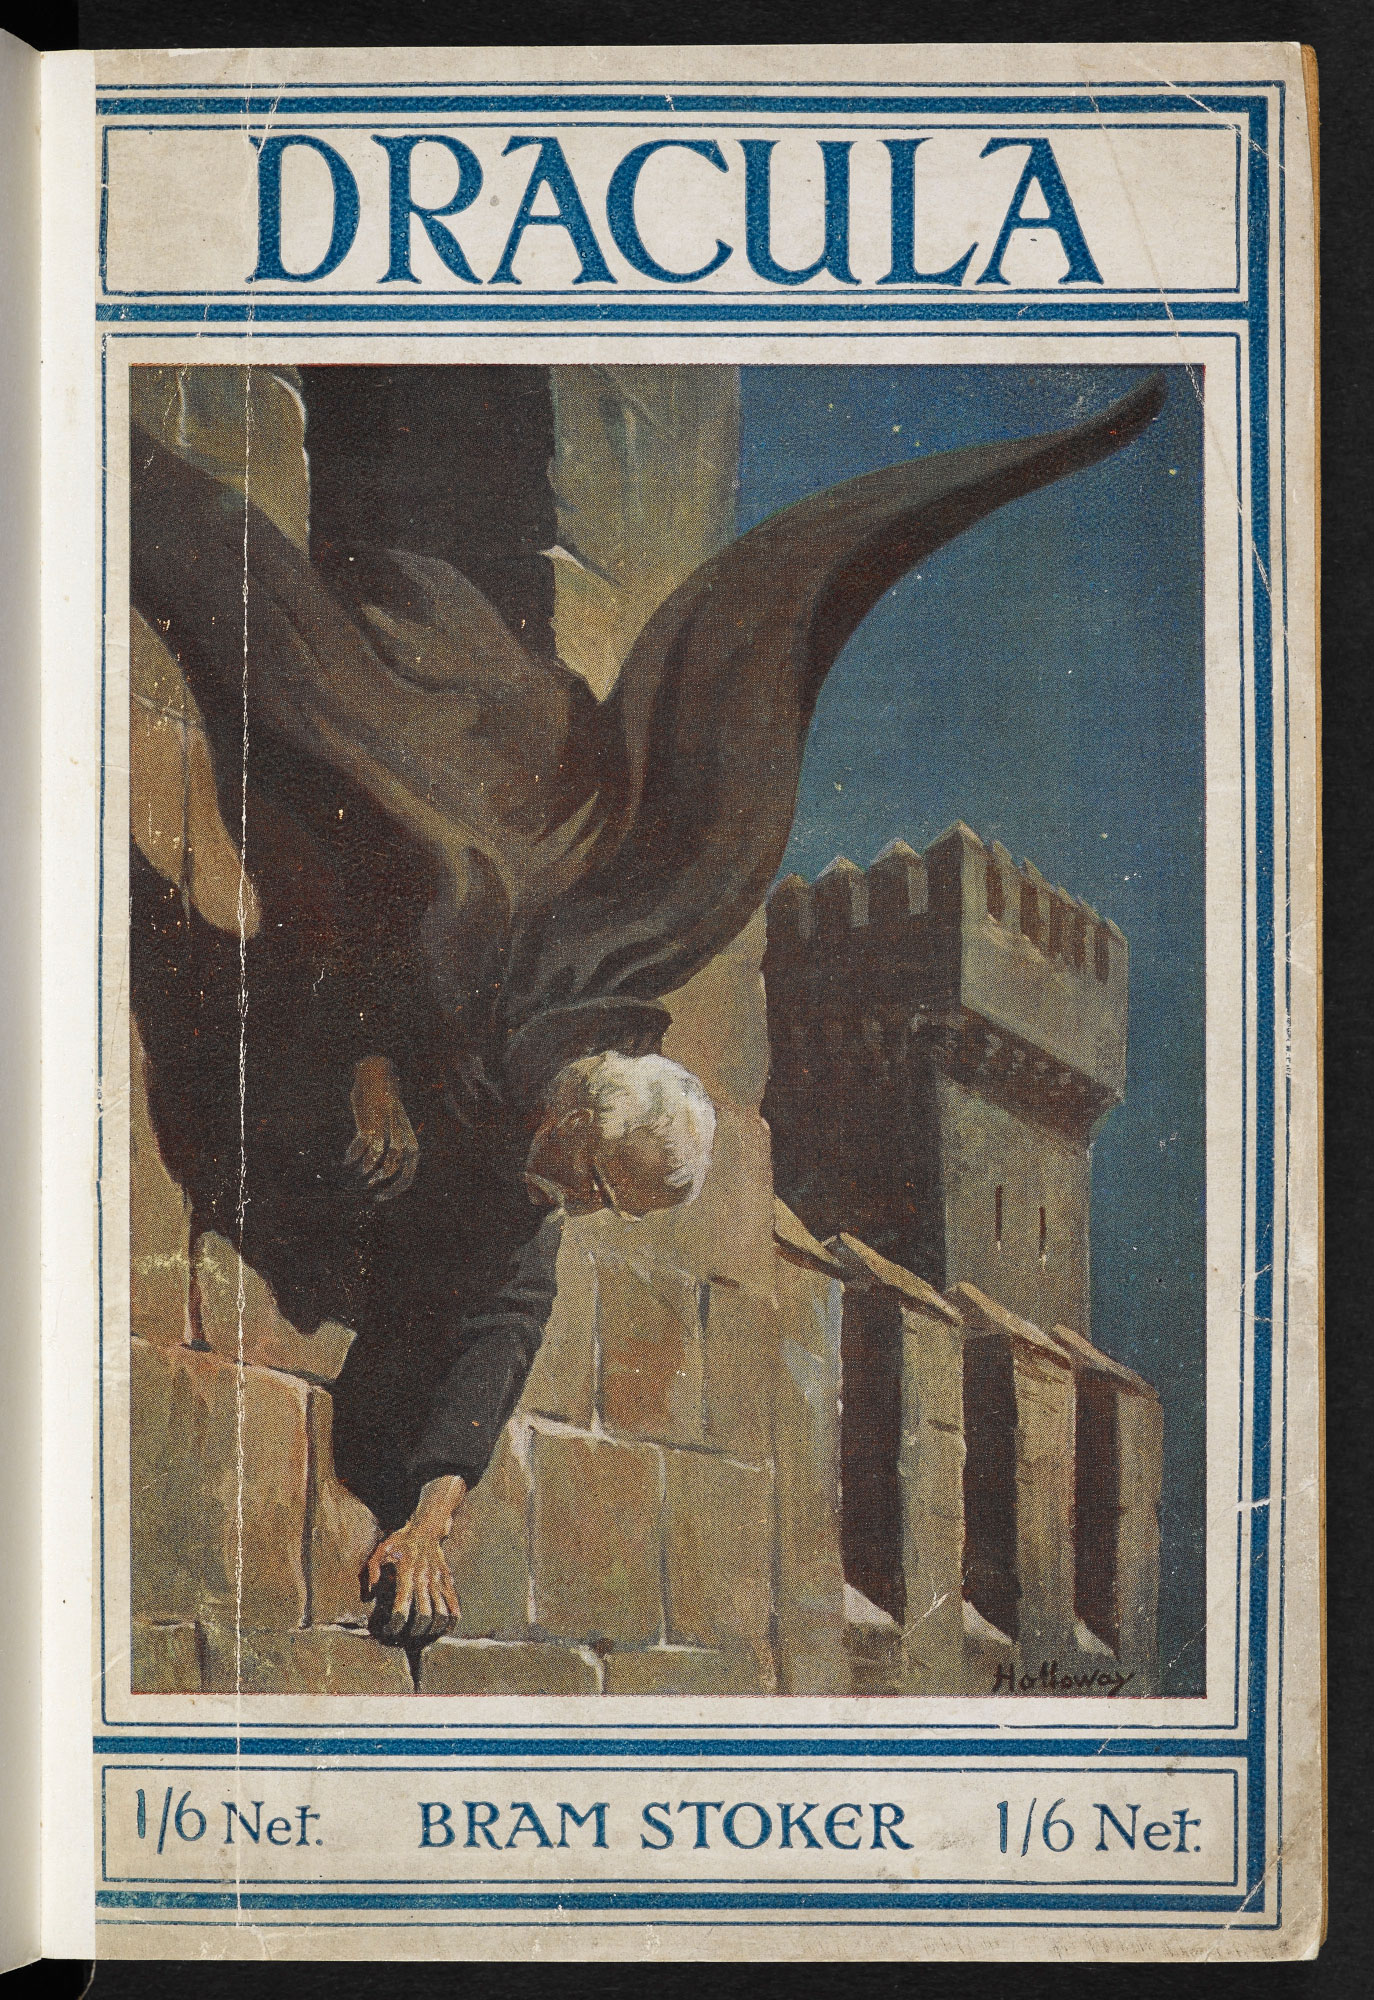 Front cover for 1919 edition of Dracula